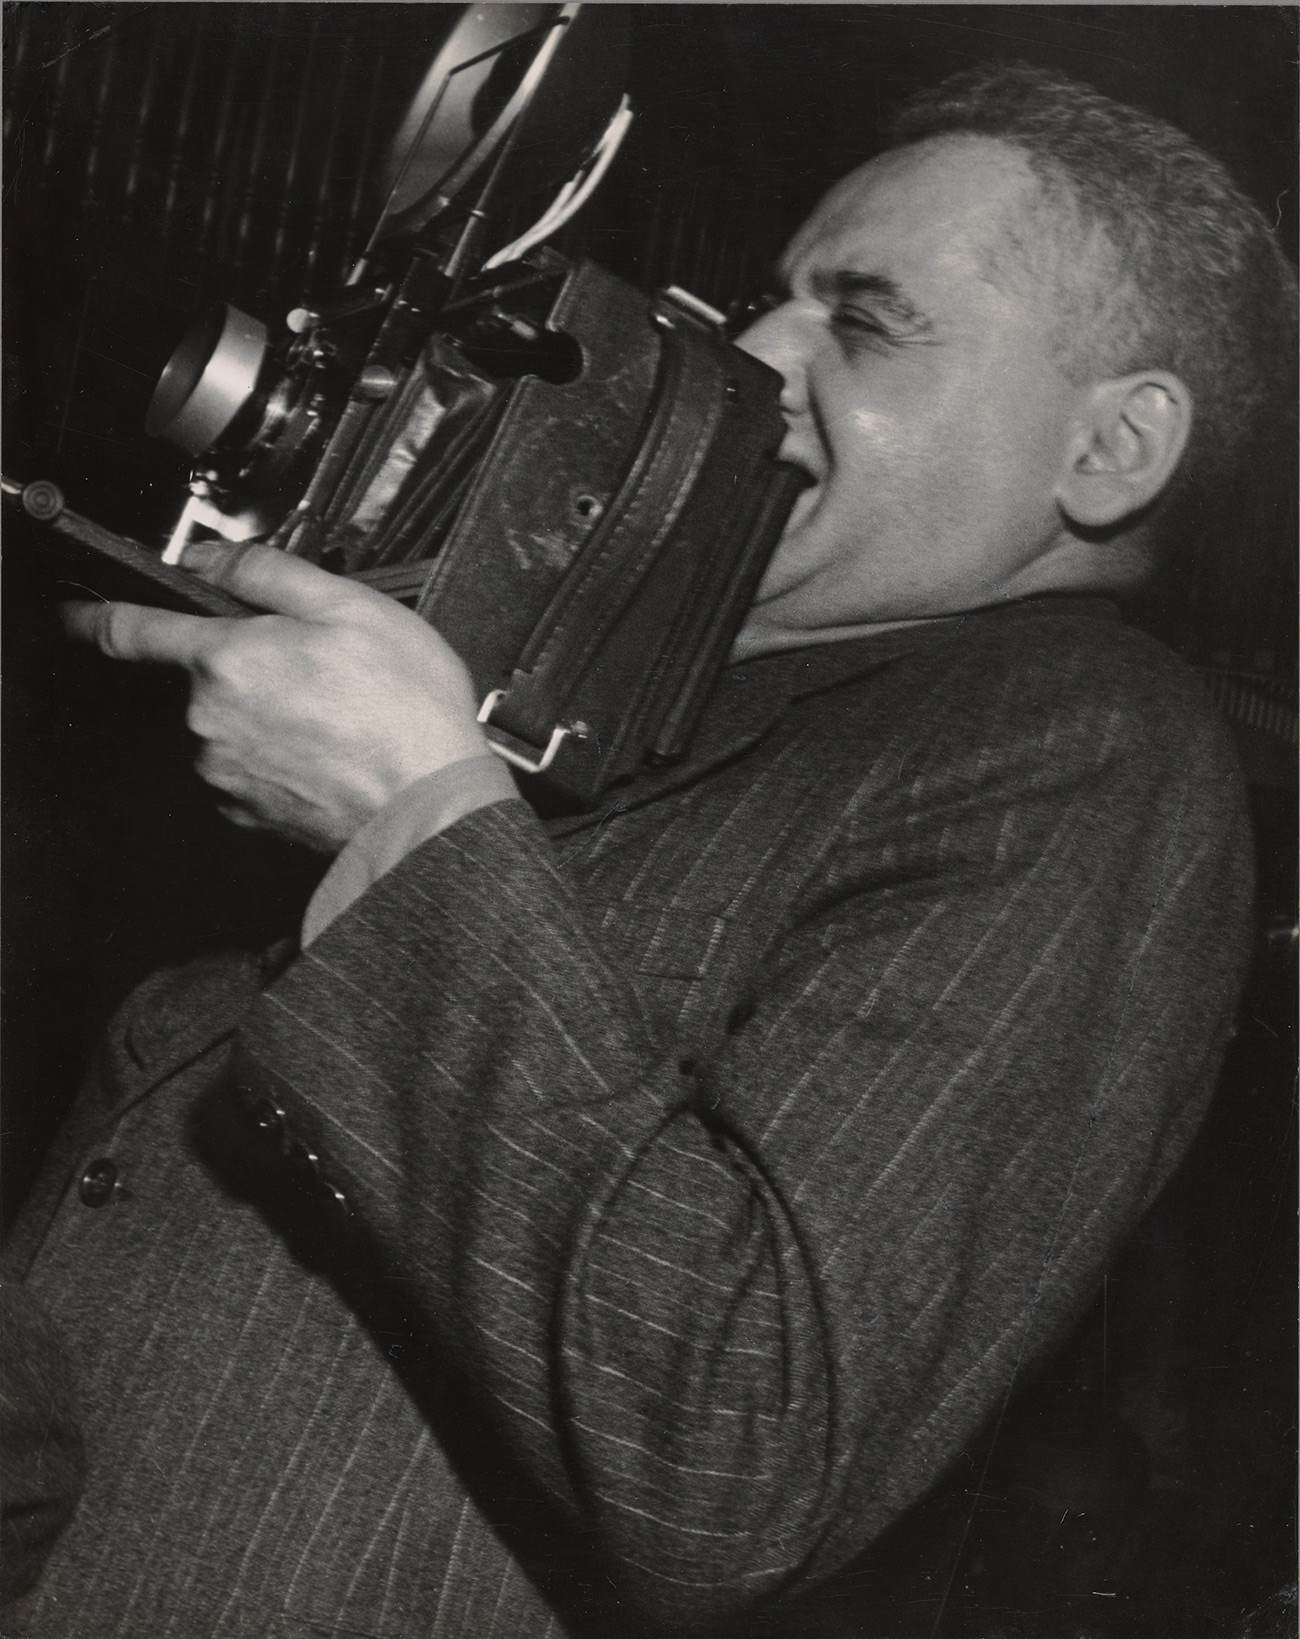 Weegee holds an old-fashioned camera up to his face, looking to the left of the viewer.